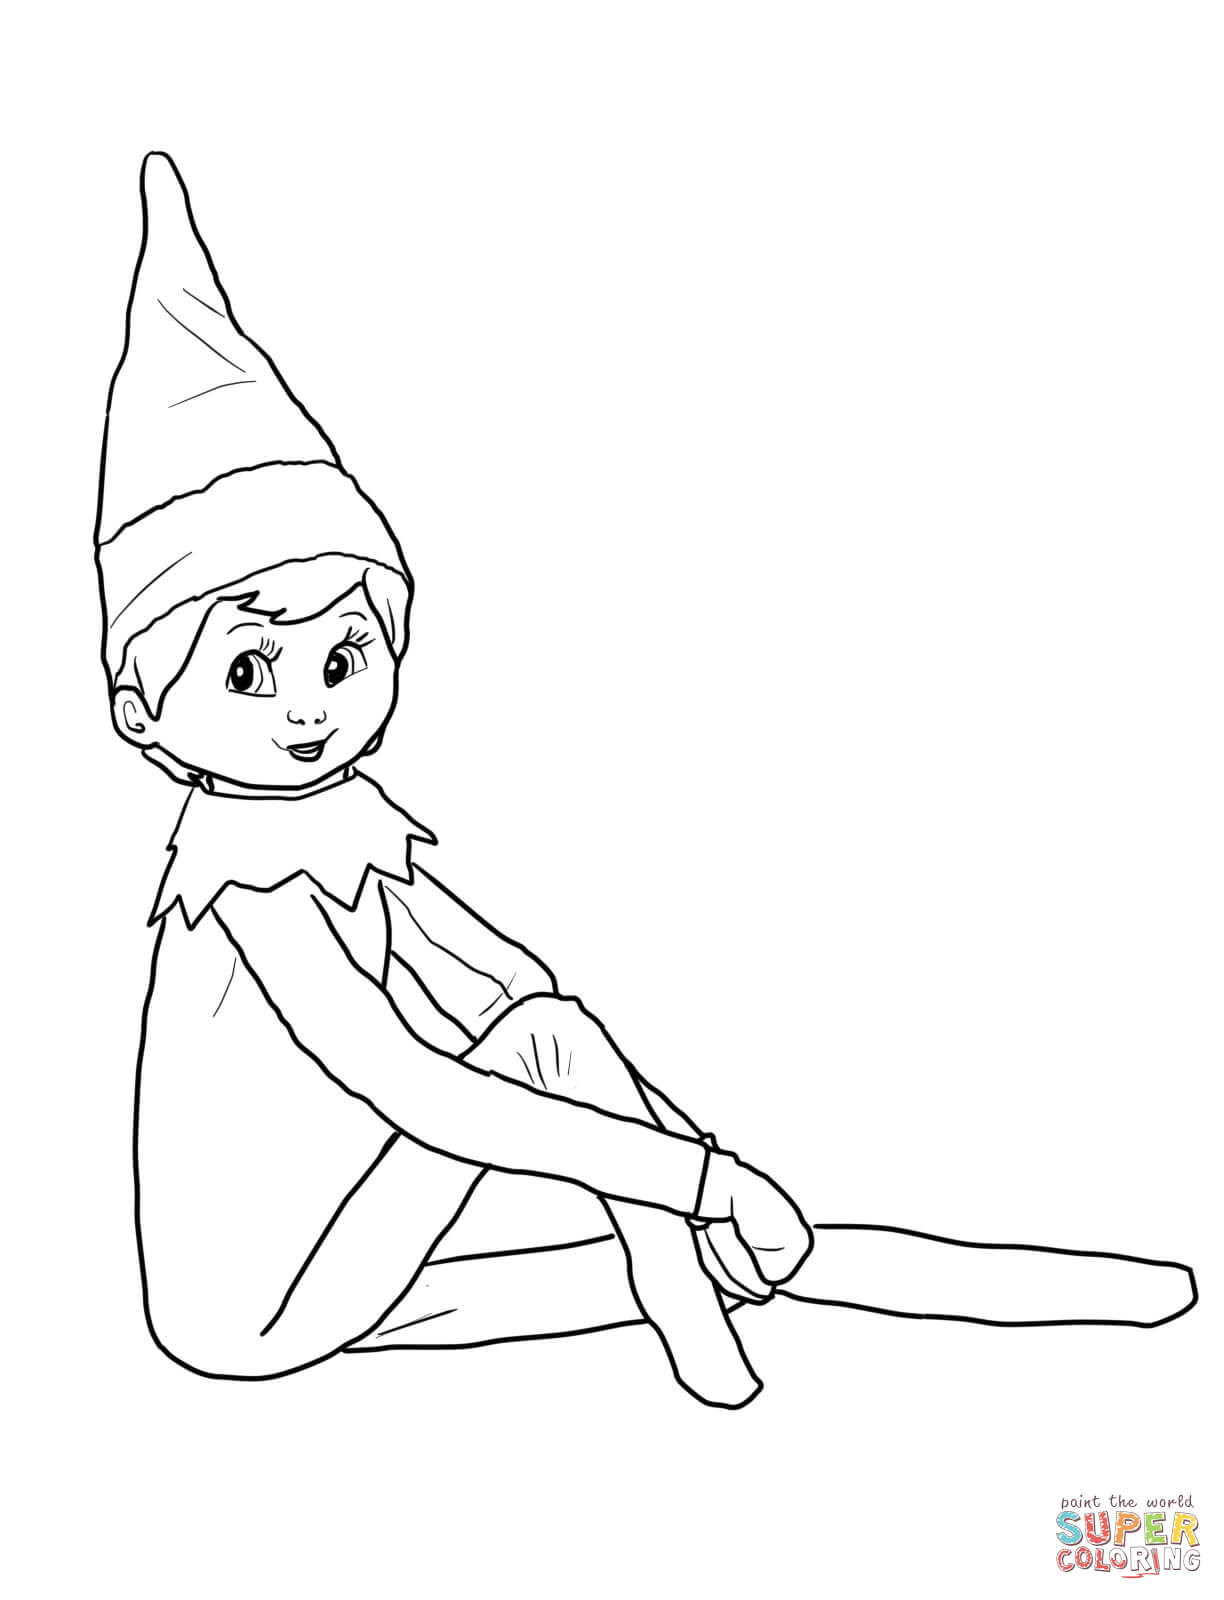 Best ideas about Elf On The Shelf Printable Coloring Pages . Save or Pin Elf on the Shelf coloring page Now.